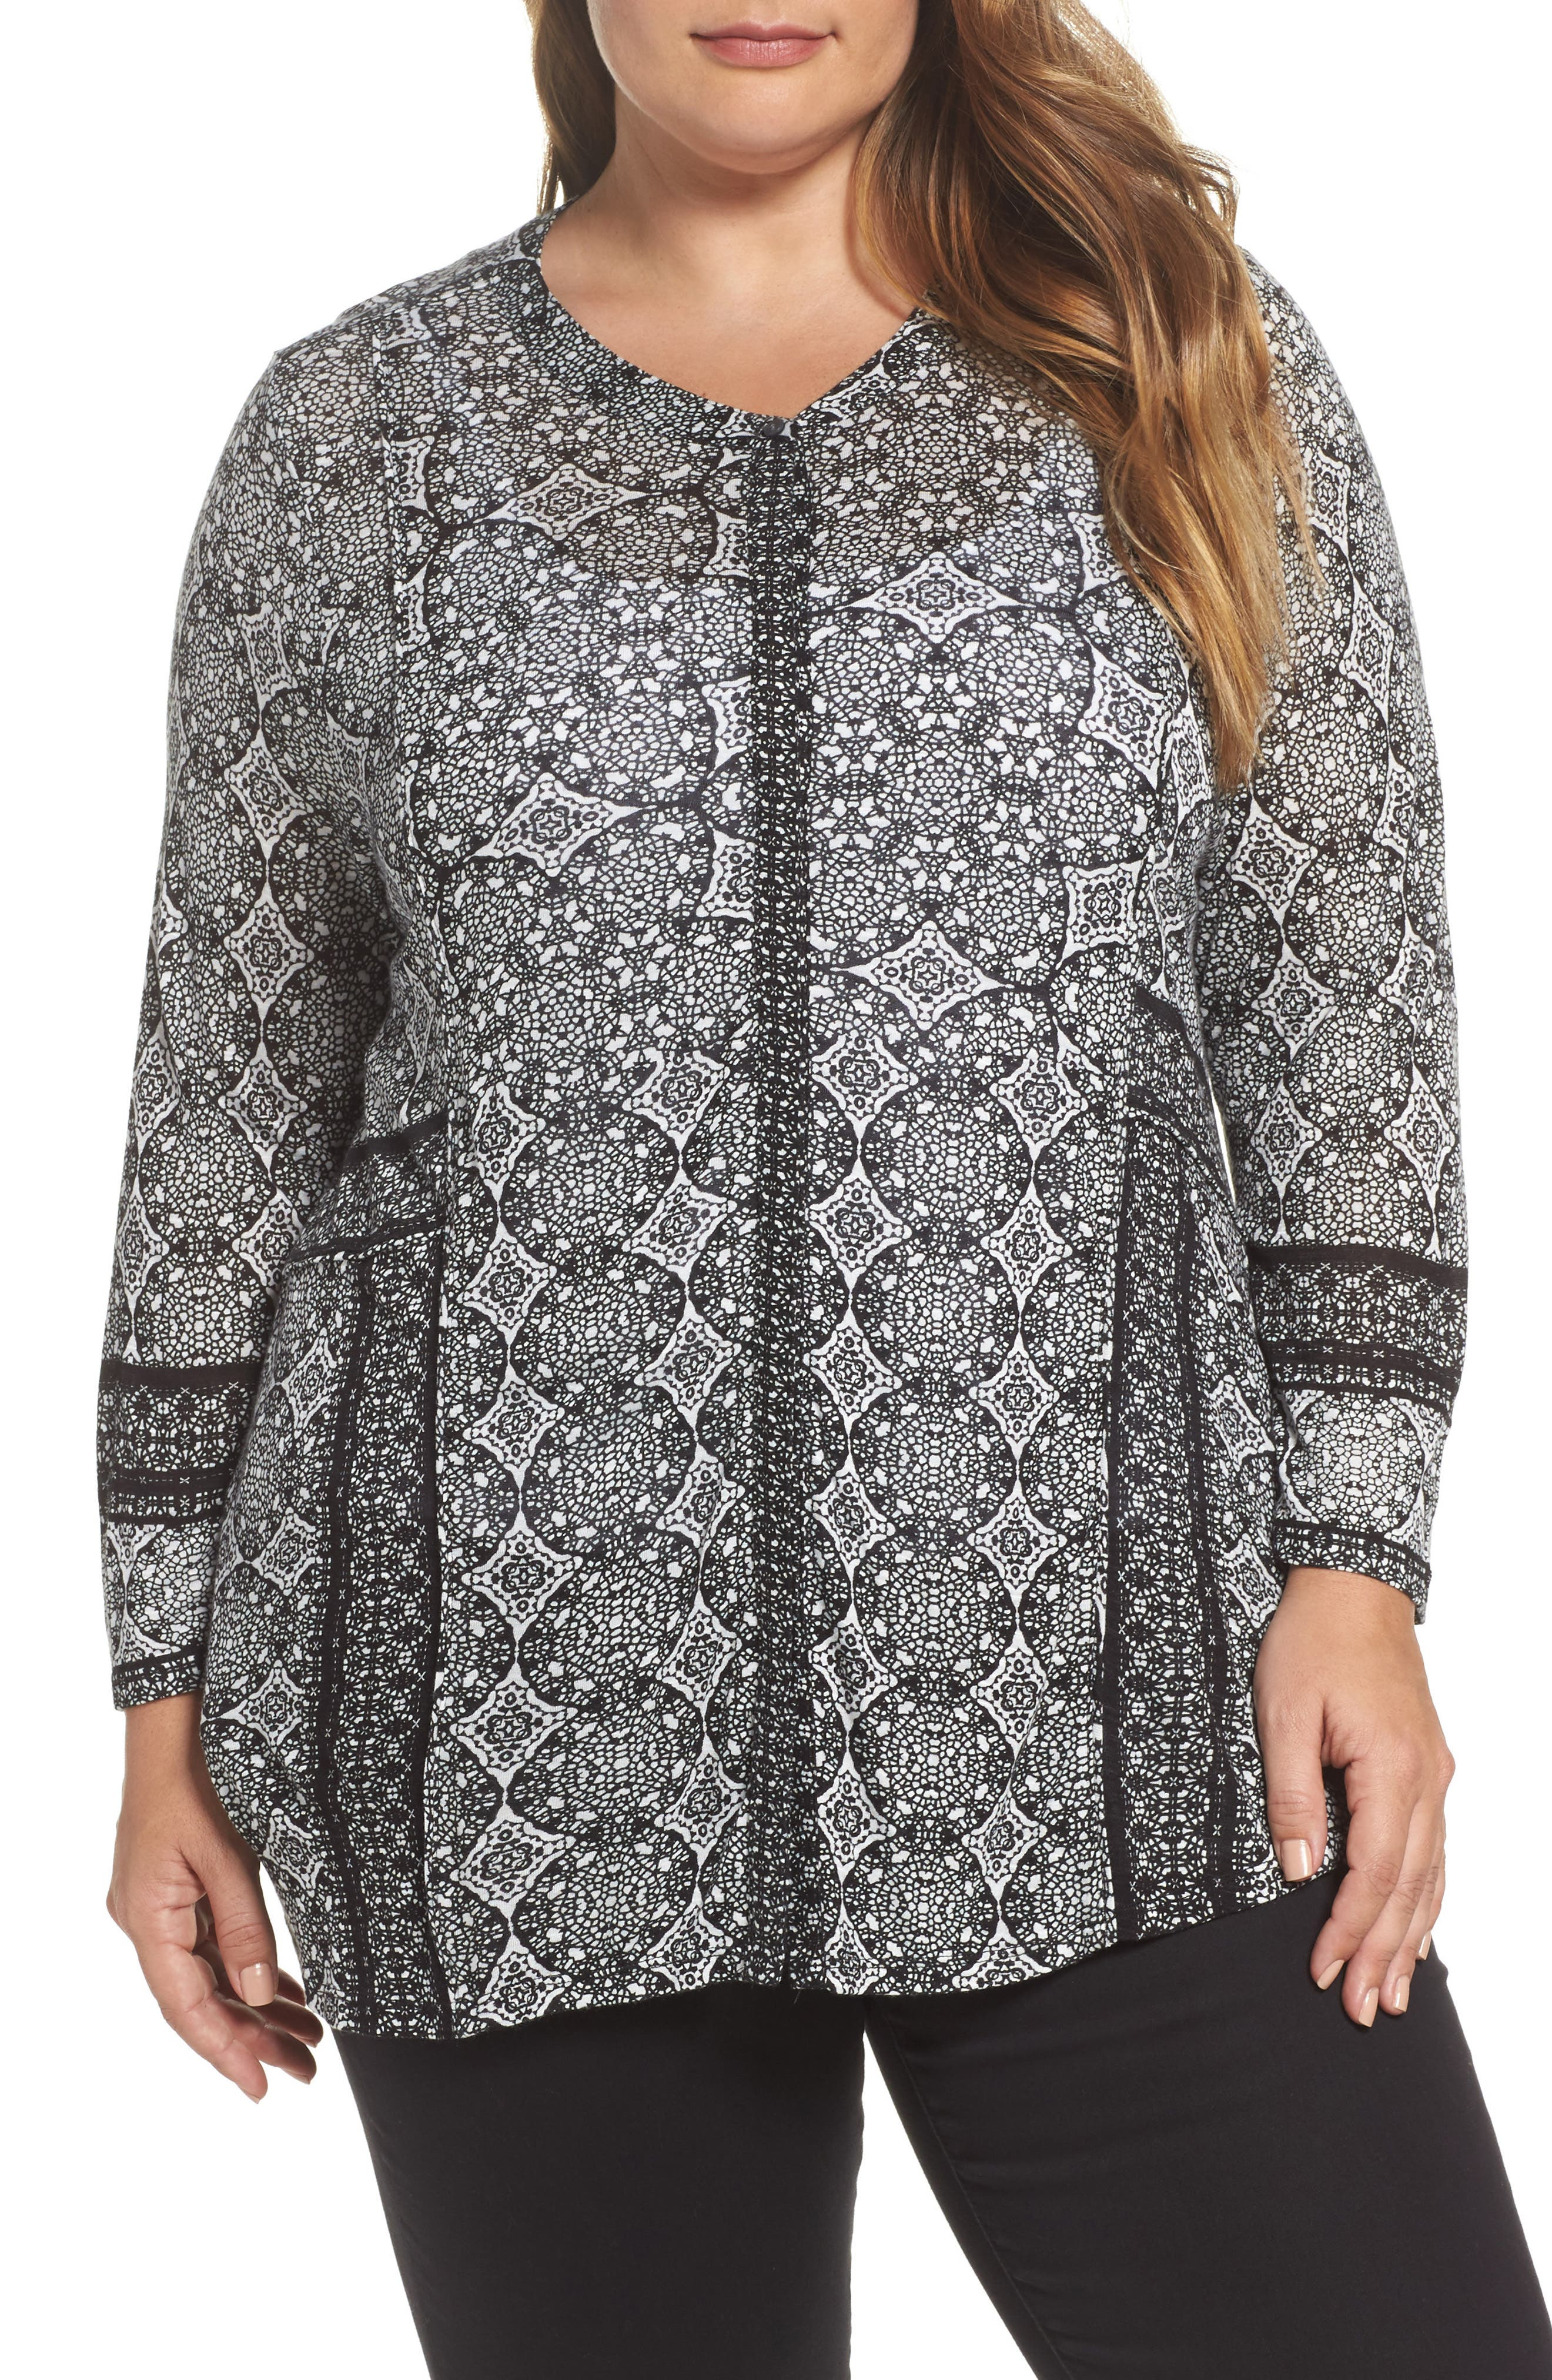 Alternate Image 1 Selected - Lucky Brand Geo Print Button-Up Shirt (Plus Size)